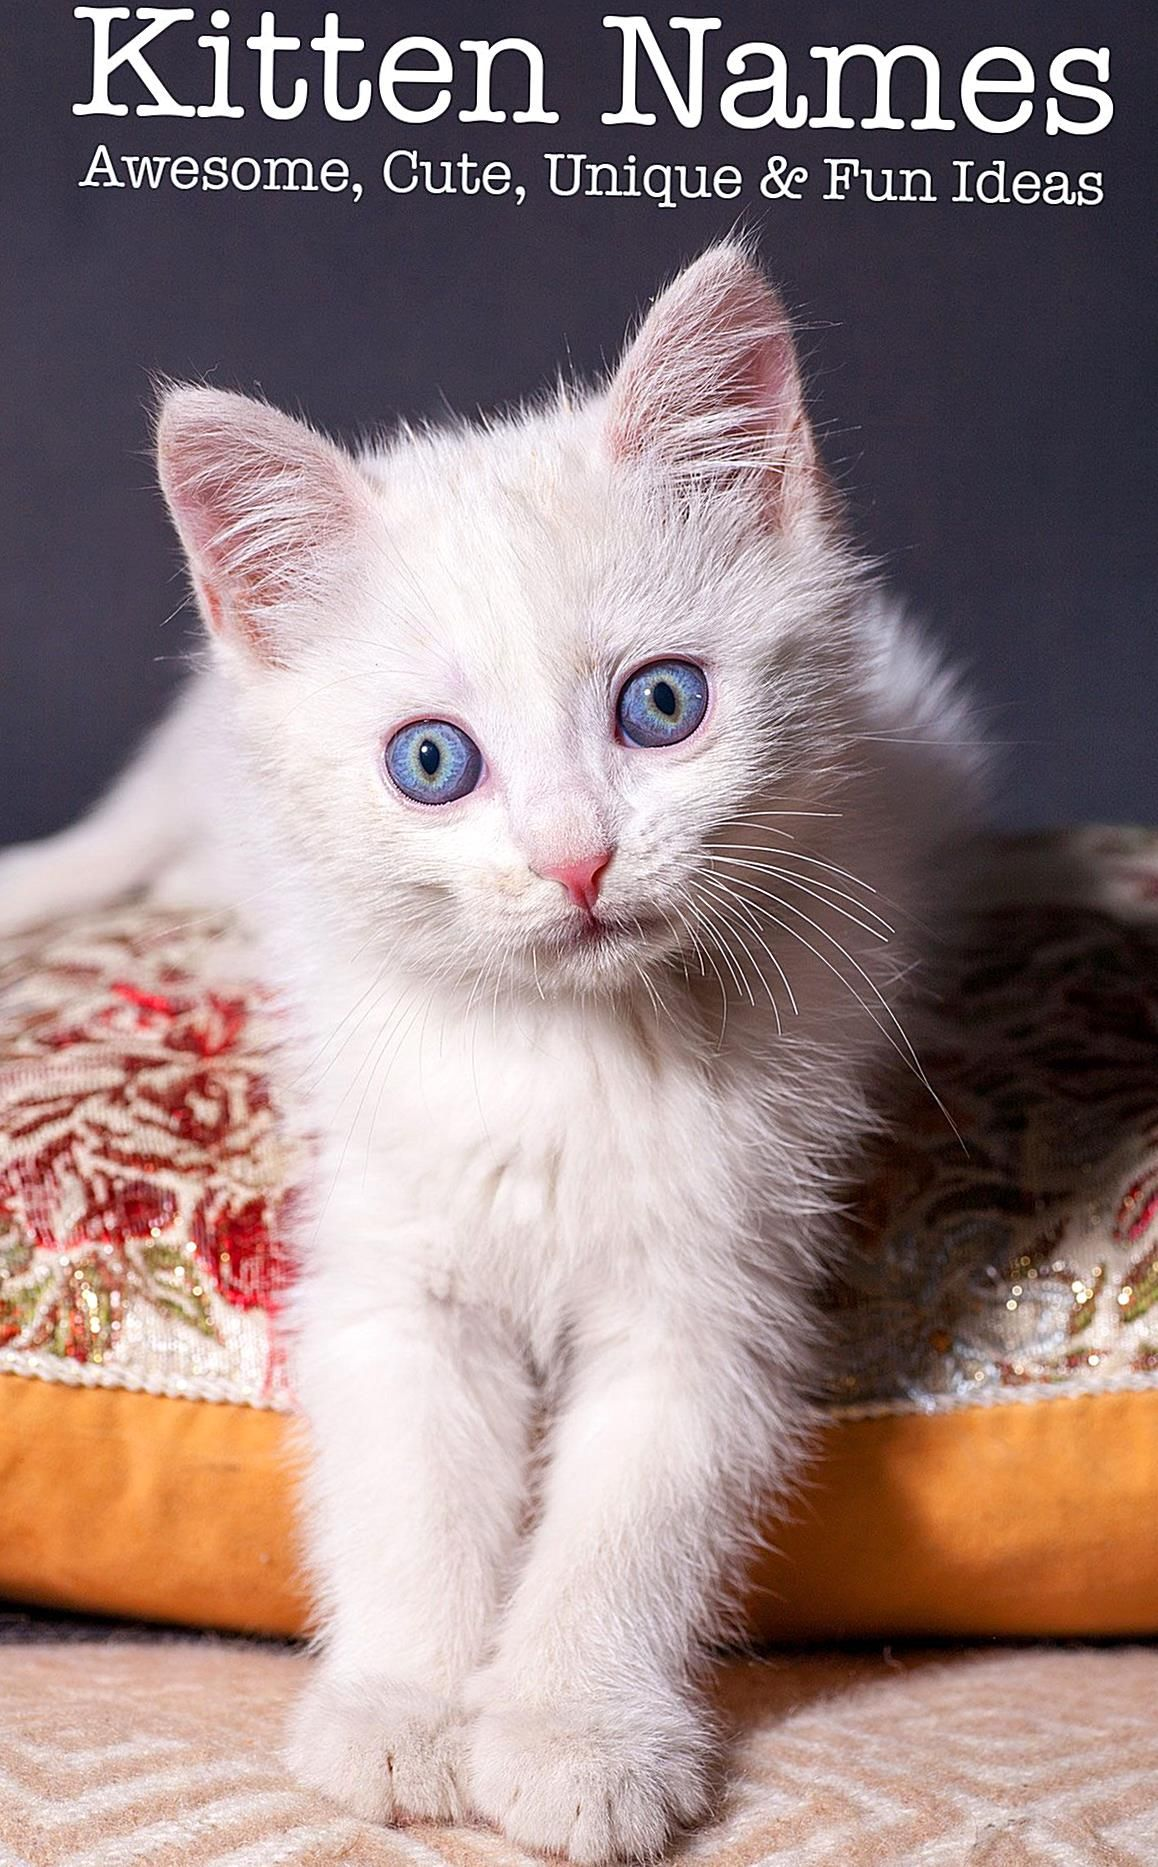 All The Best Kitten Names In One Place With Cute Unique And Creative Names For Your Baby Boy Or Girl Kitty Find The Perf In 2020 Kitten Names Girl Cat Names